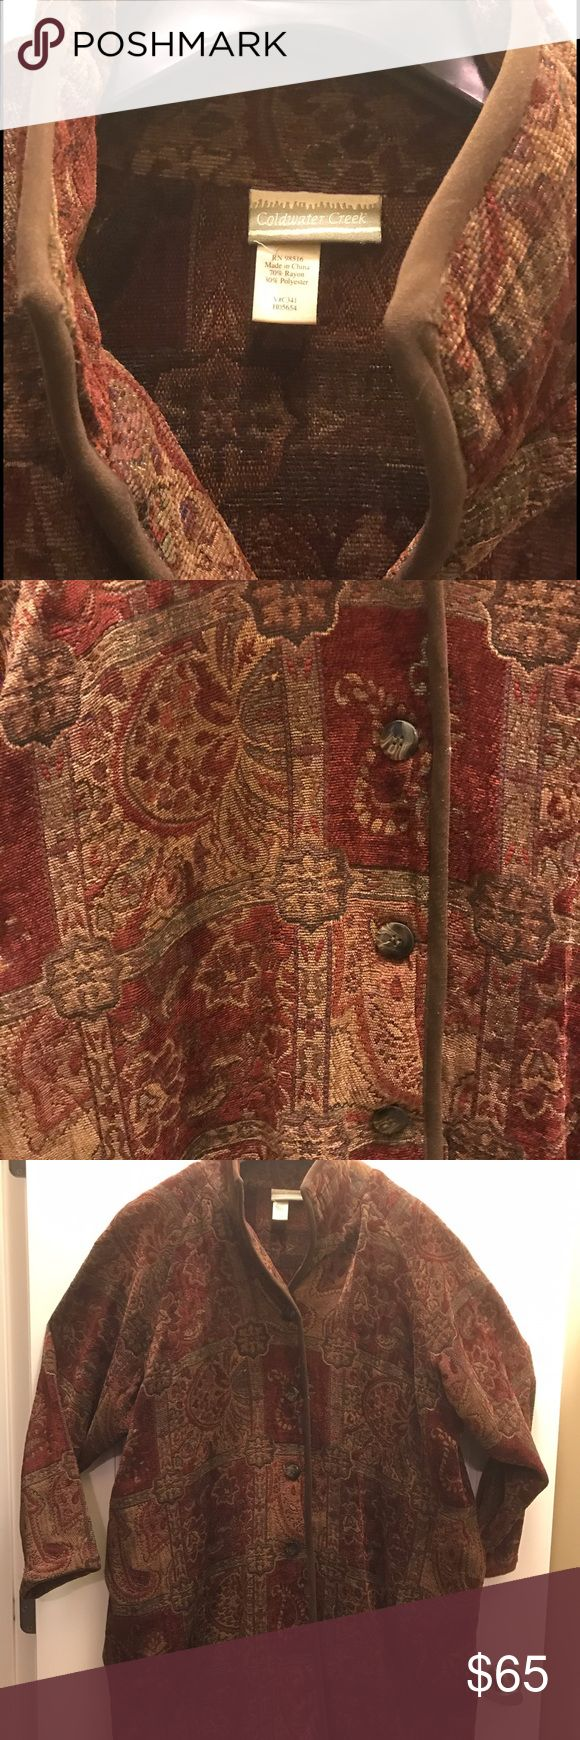 Coldwater Creek Tapestry Coat Stunning tapestry coat from Coldwater Creek in shades of brown, rust, maroon and more. Button down with rust trim. Coldwater Creek Jackets & Coats